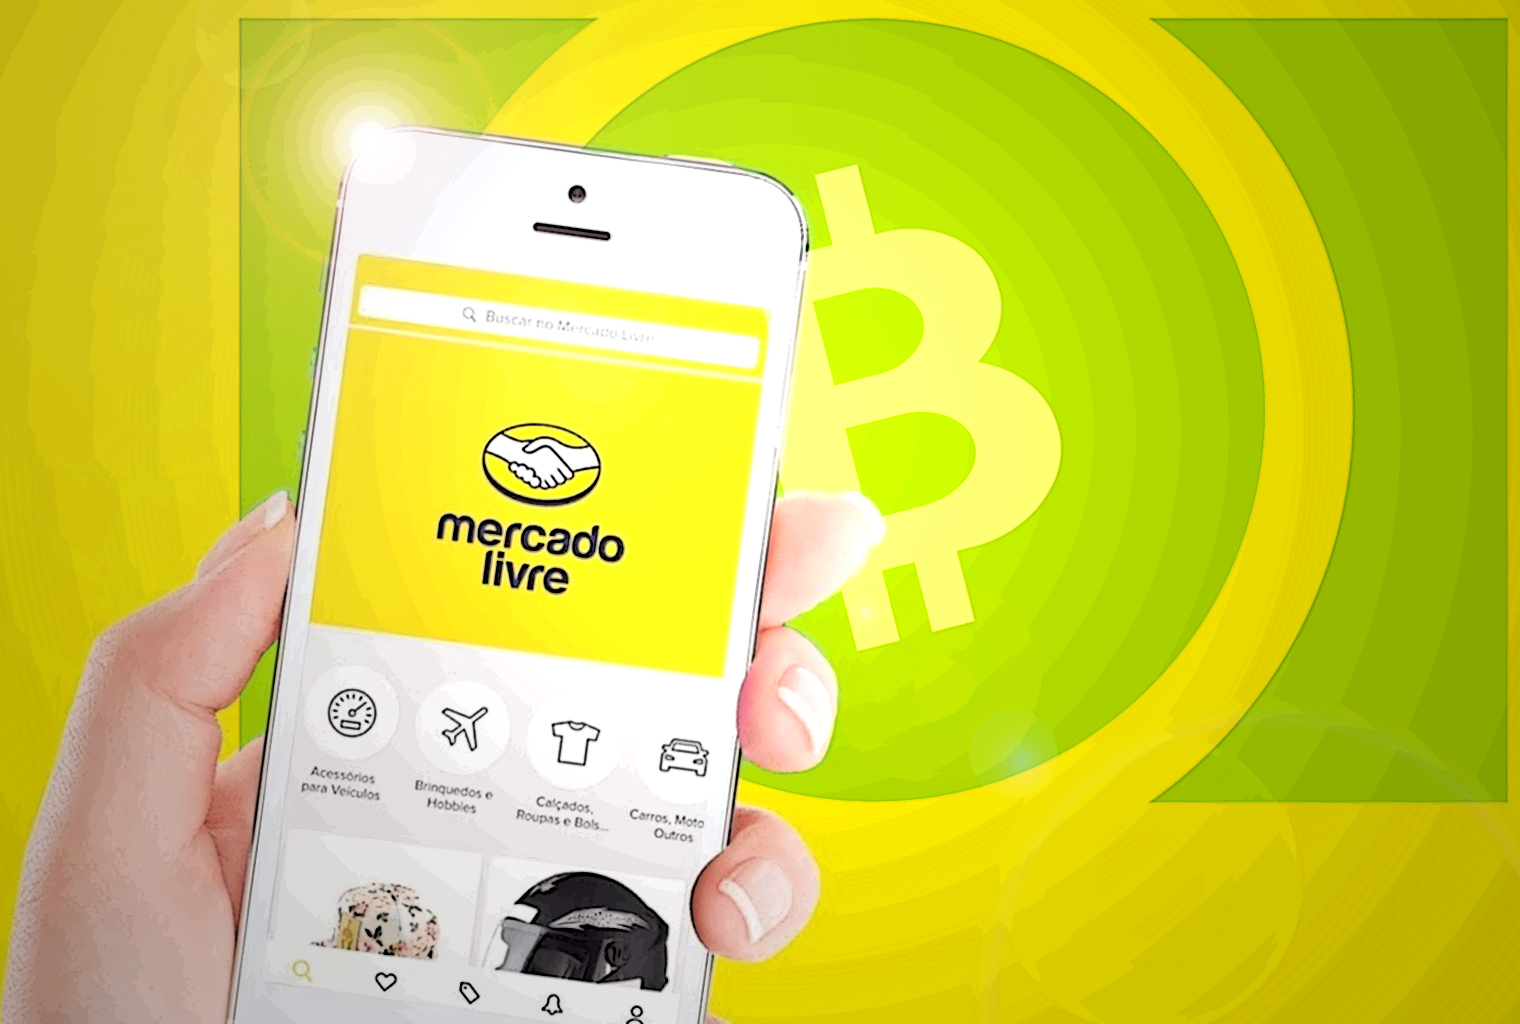 Latin American Payment App Mercado Pago Can Be Topped-Up With Crypto